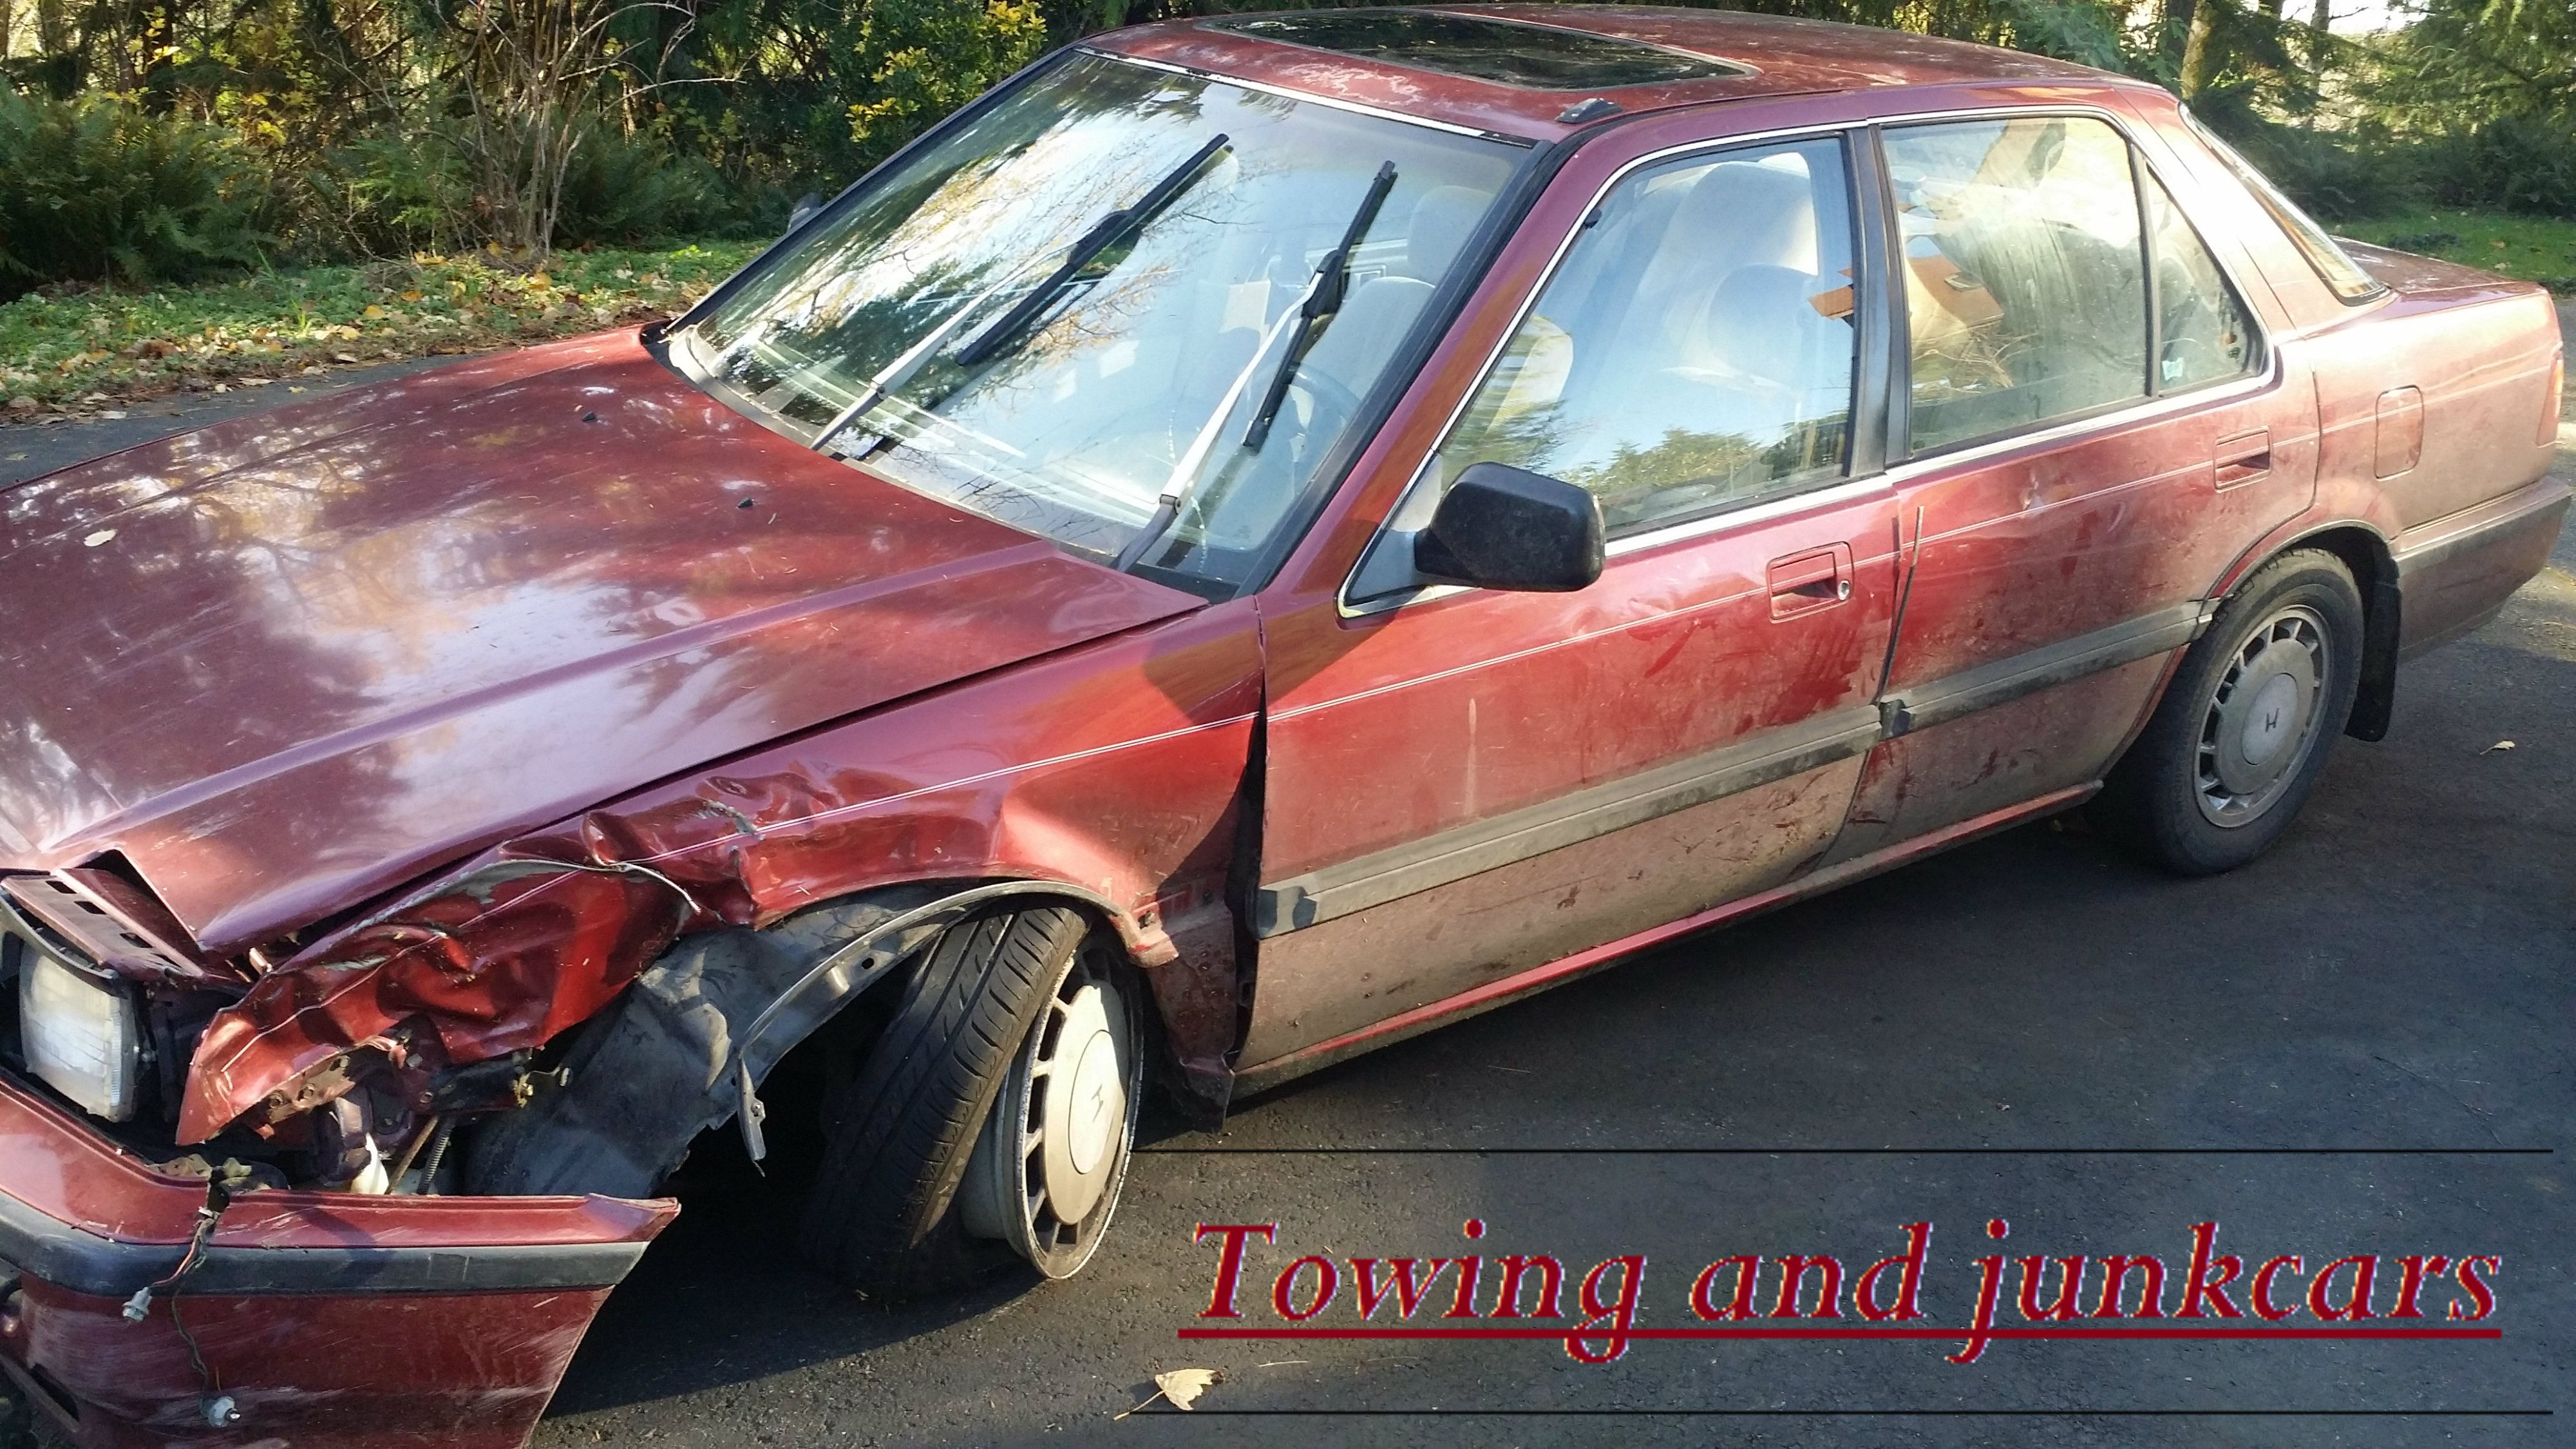 If You Are Looking For Junk Car Removal Company Then Towing And